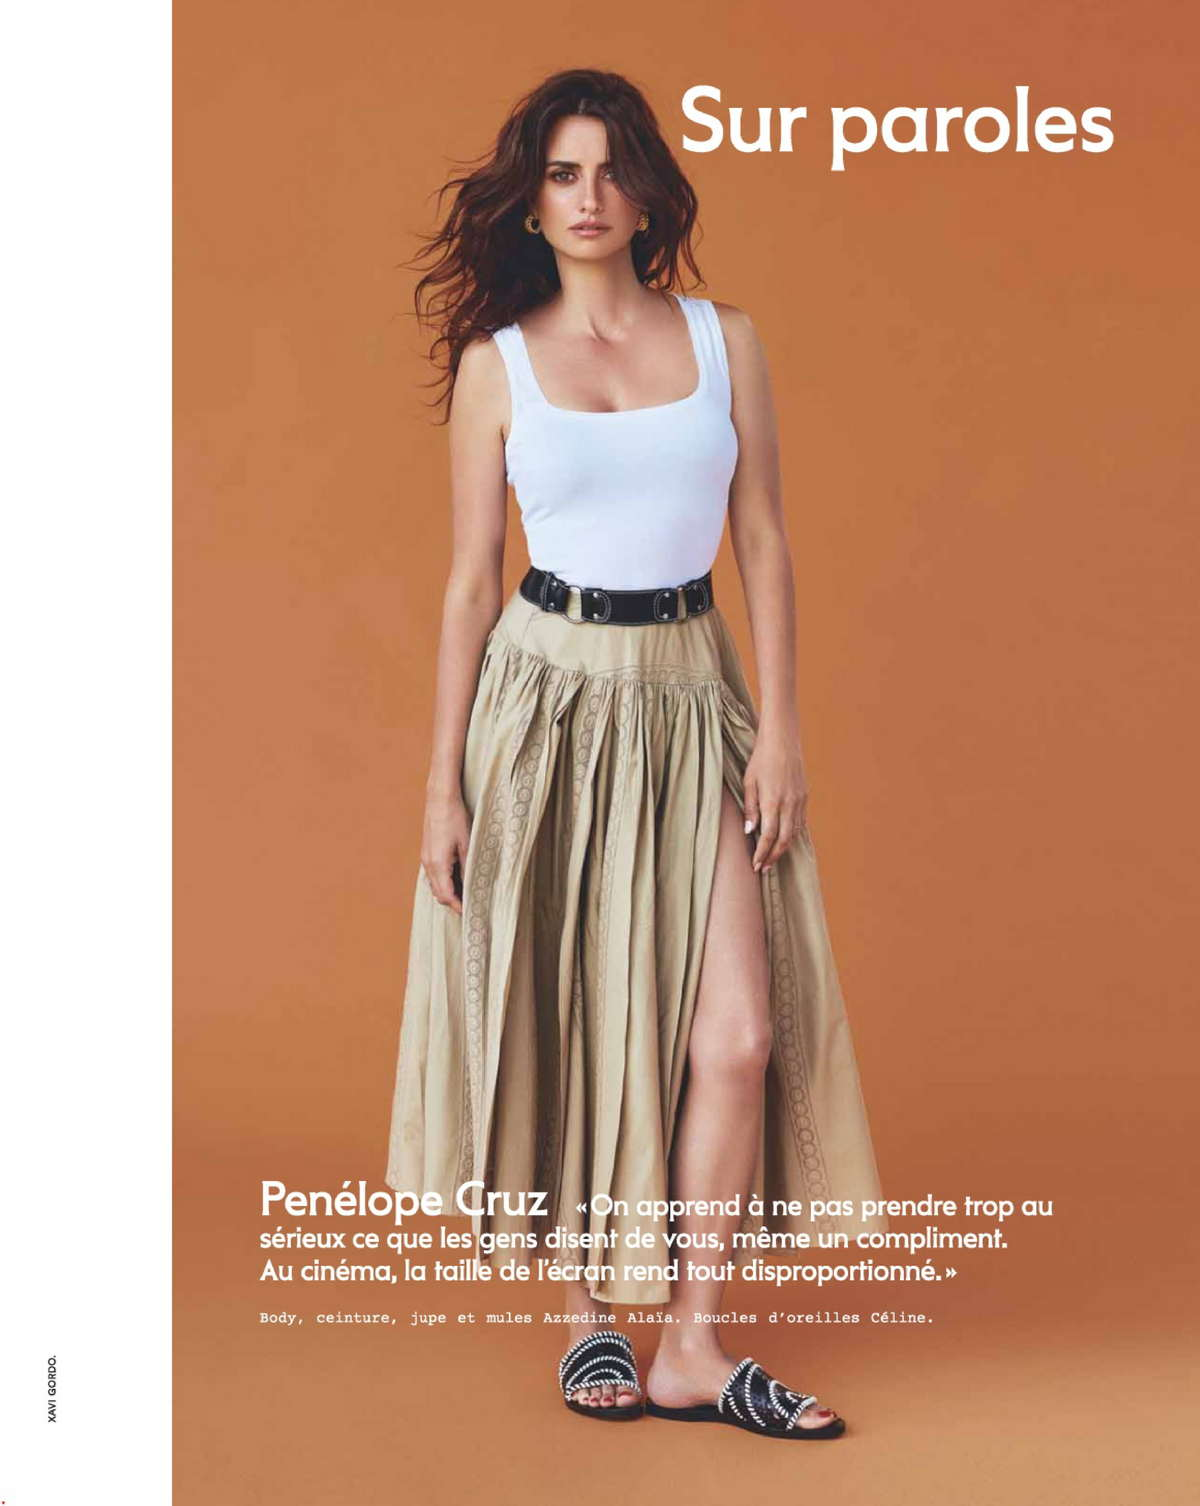 Penelope-Cruz-Marie-Claire-France-September-201800003.jpg